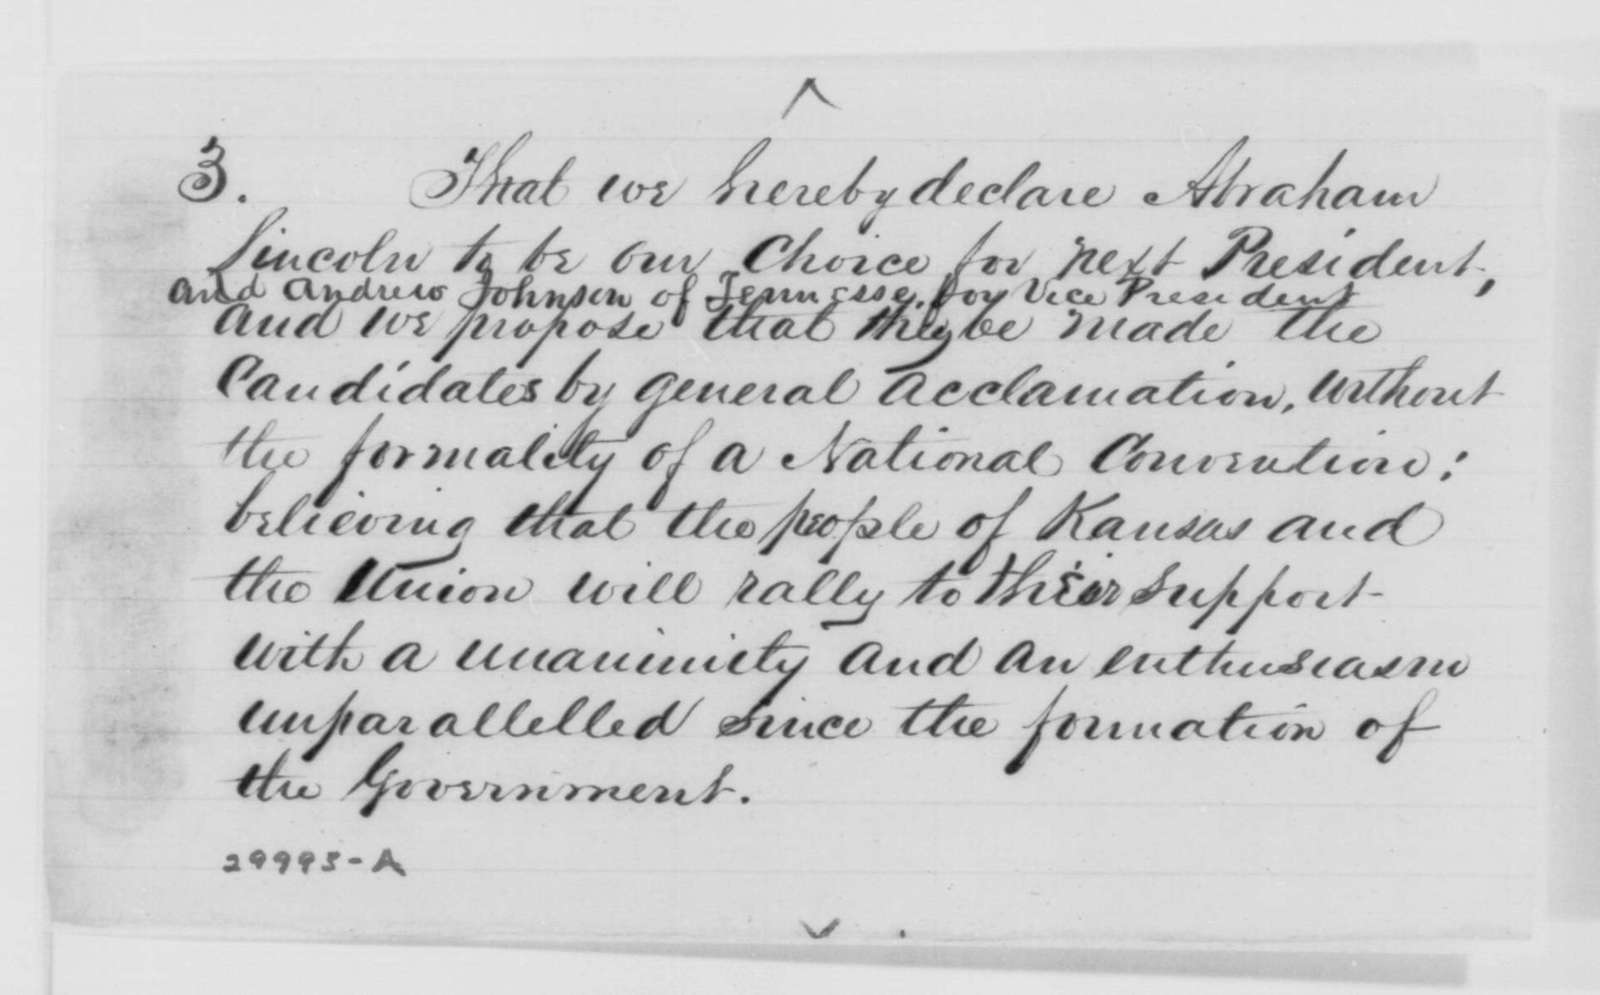 John T. Morton to John G. Nicolay, Saturday, January 30, 1864  (Sends resolutions from Kansas Legislature)